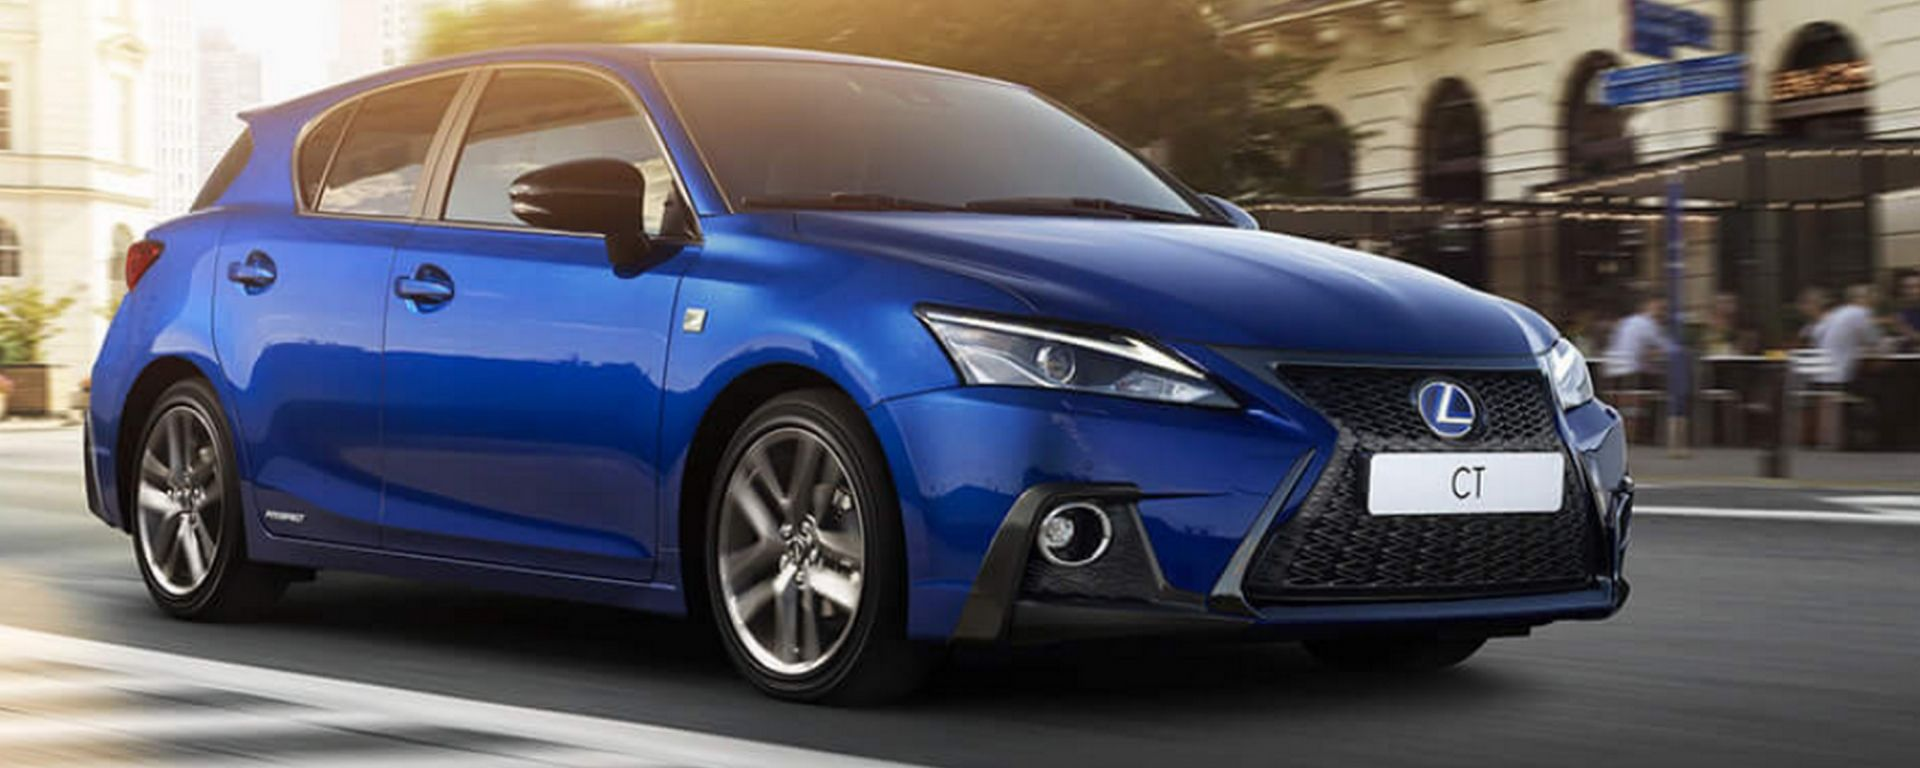 Lexus CT 200h: ecco il model year 2018